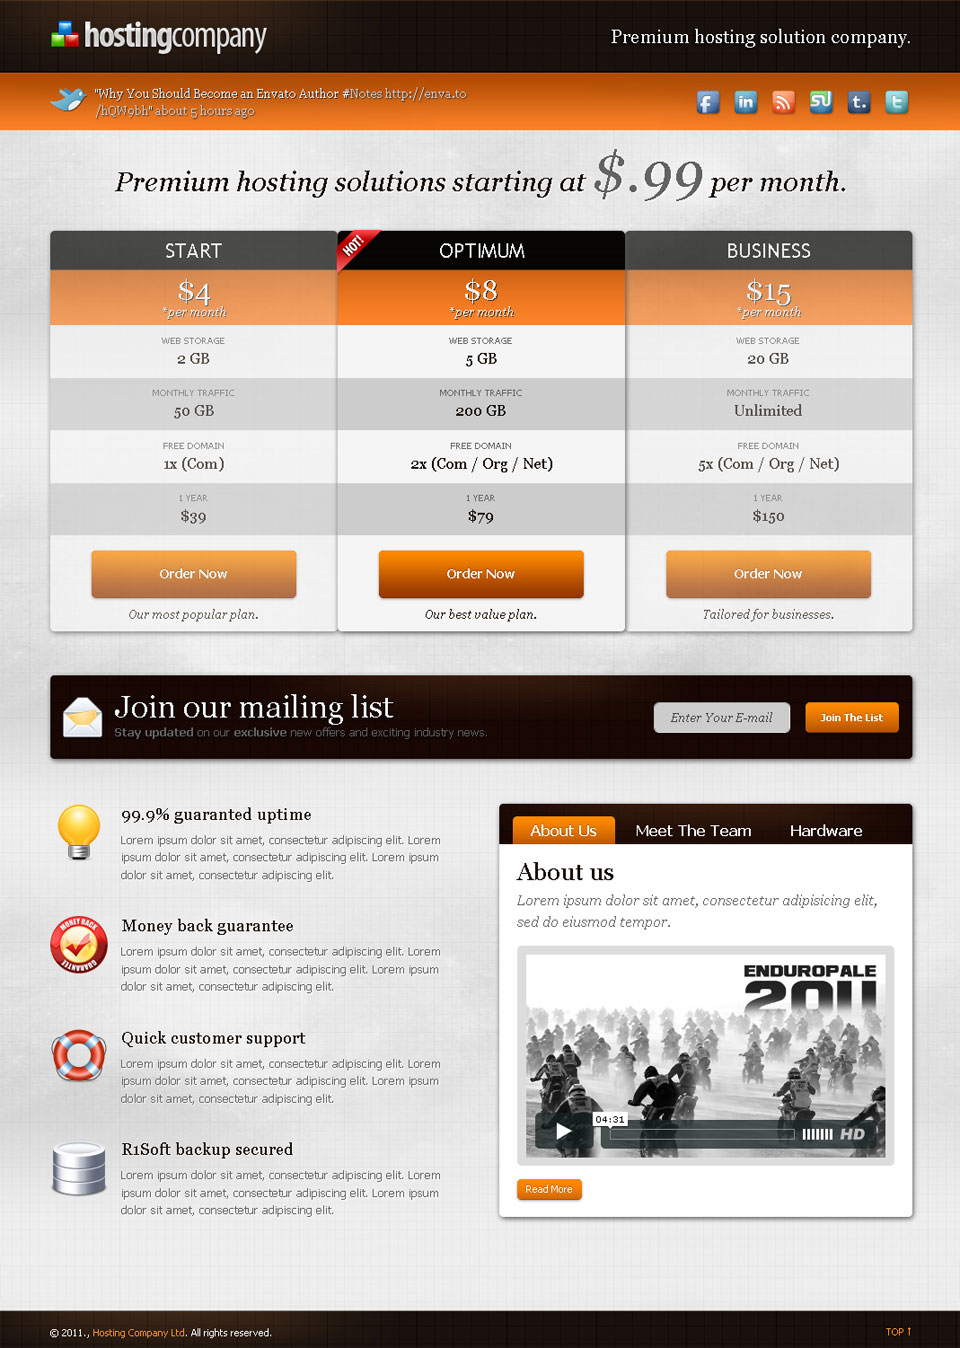 Hosting Company Landing Page - Orange - Pricing tables